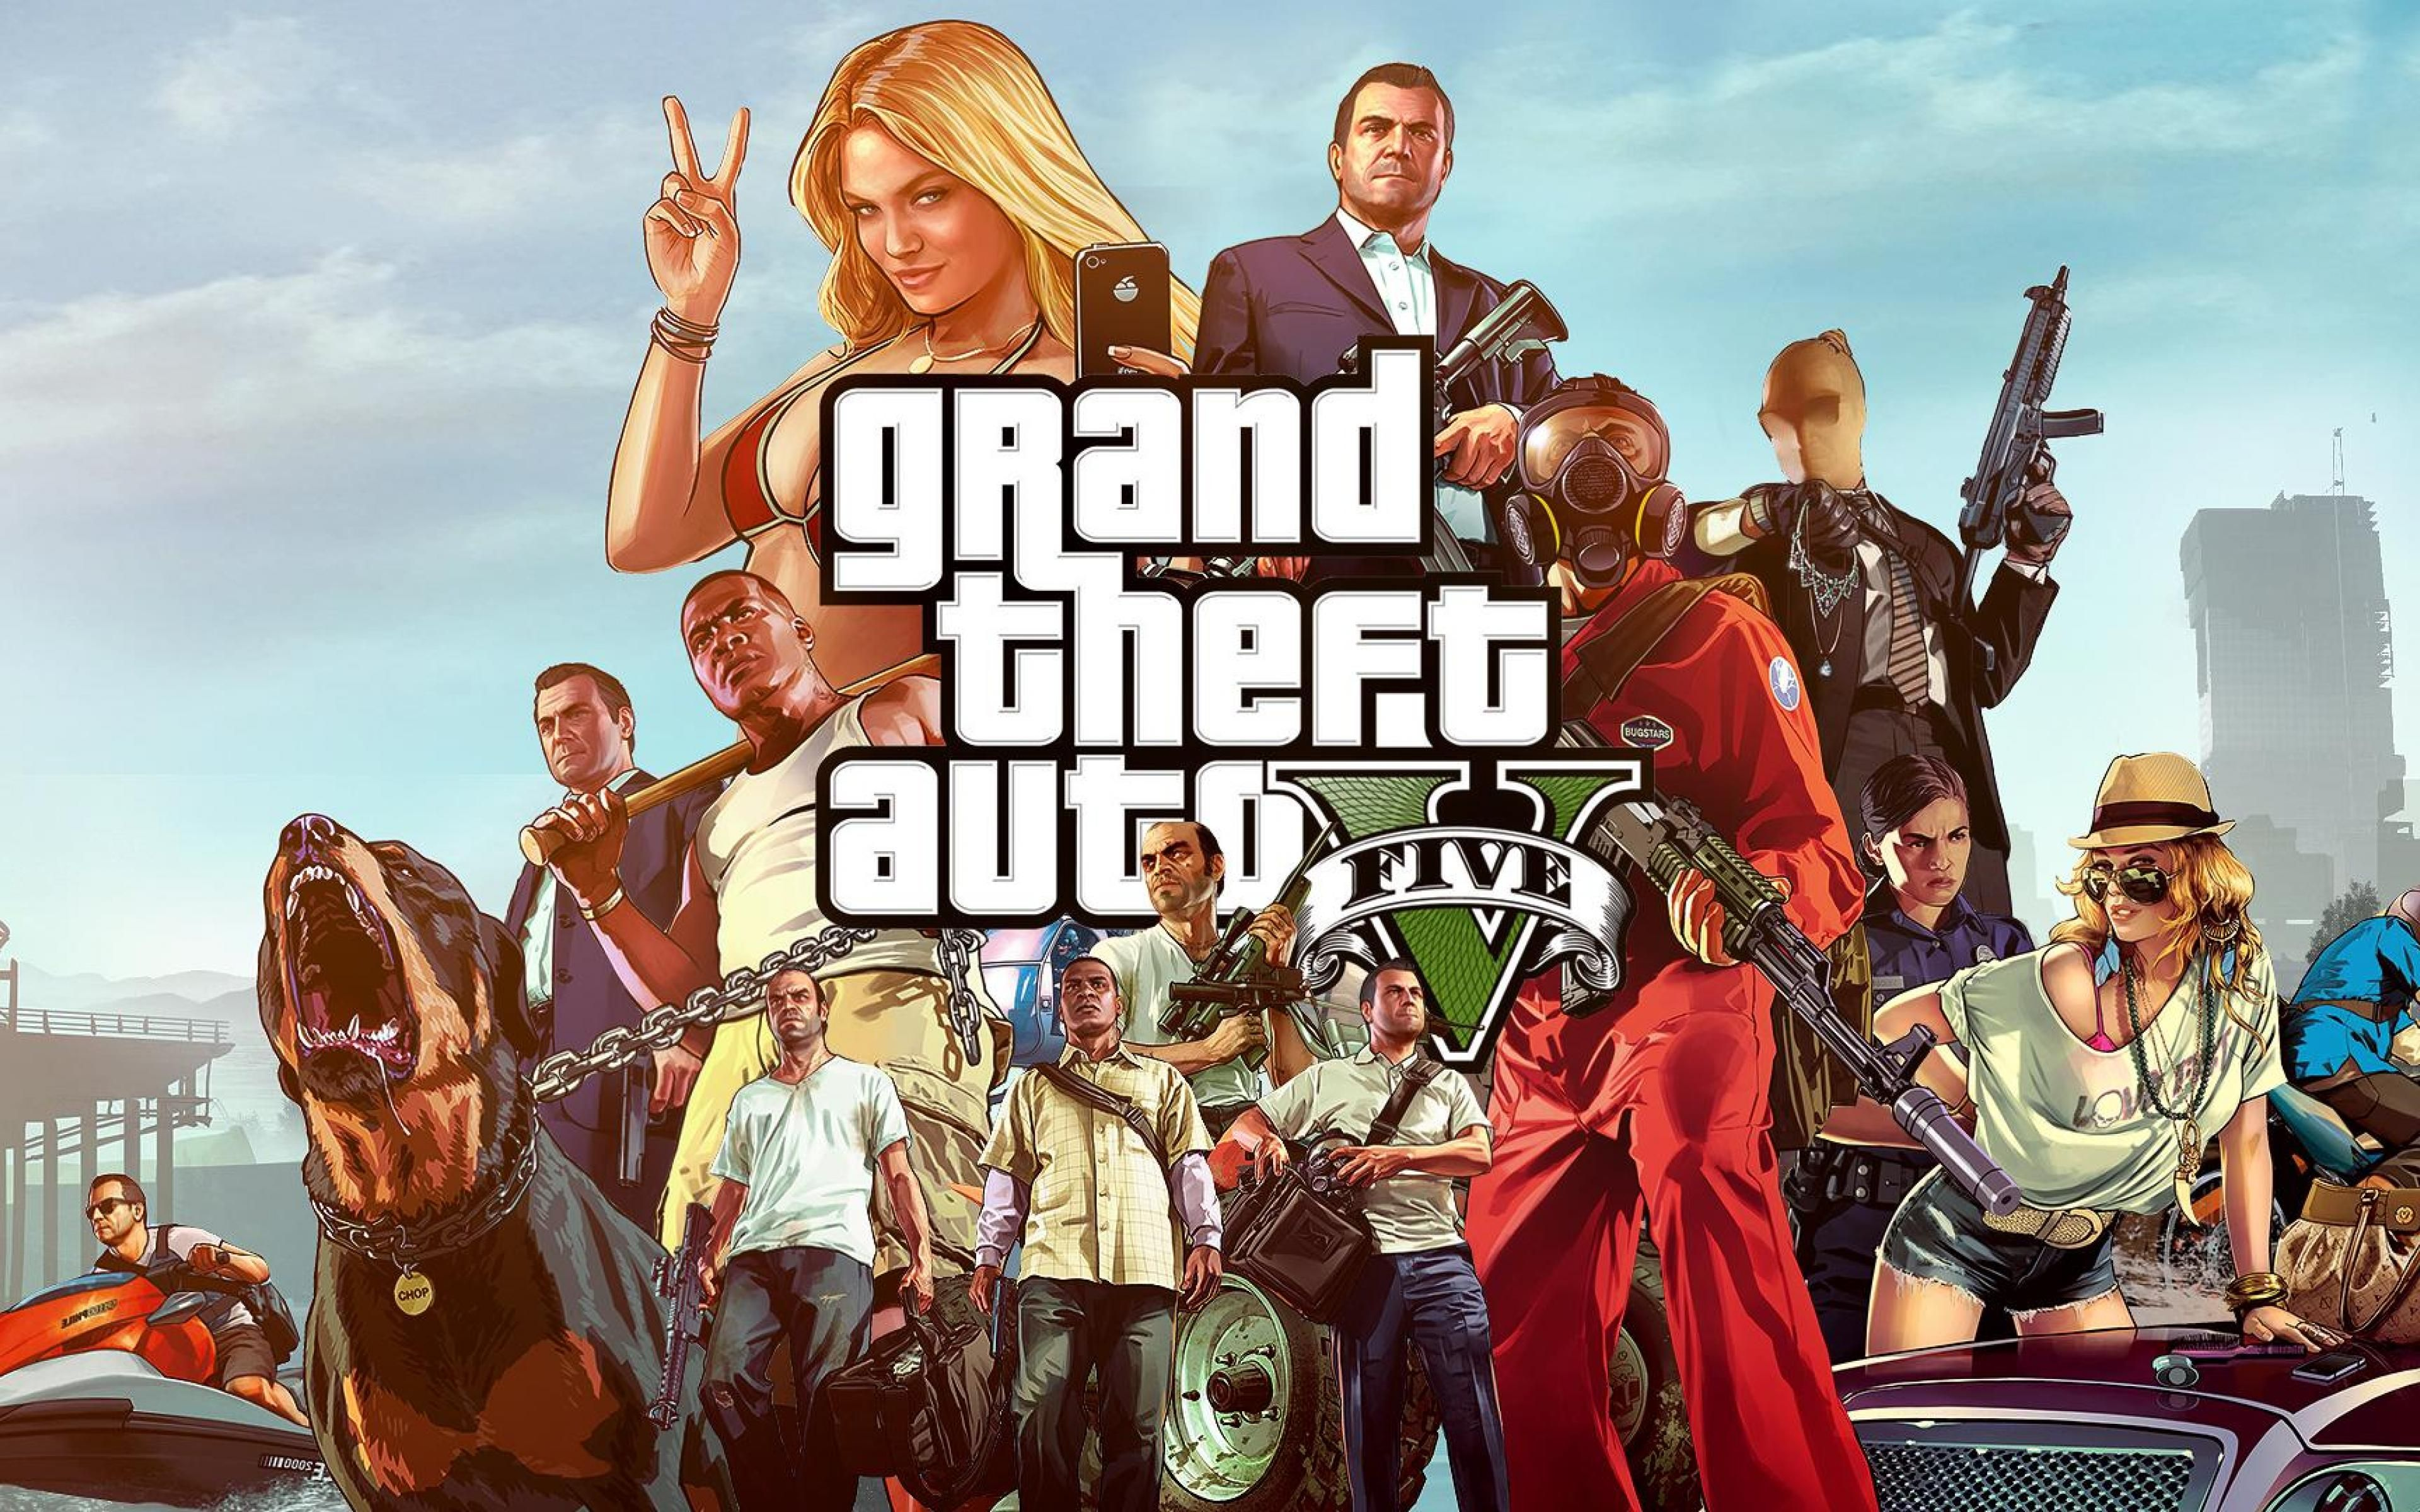 Download image gta5 pc android iphone and ipad wallpapers and - Download Image Gta5 Pc Android Iphone And Ipad Wallpapers And 4